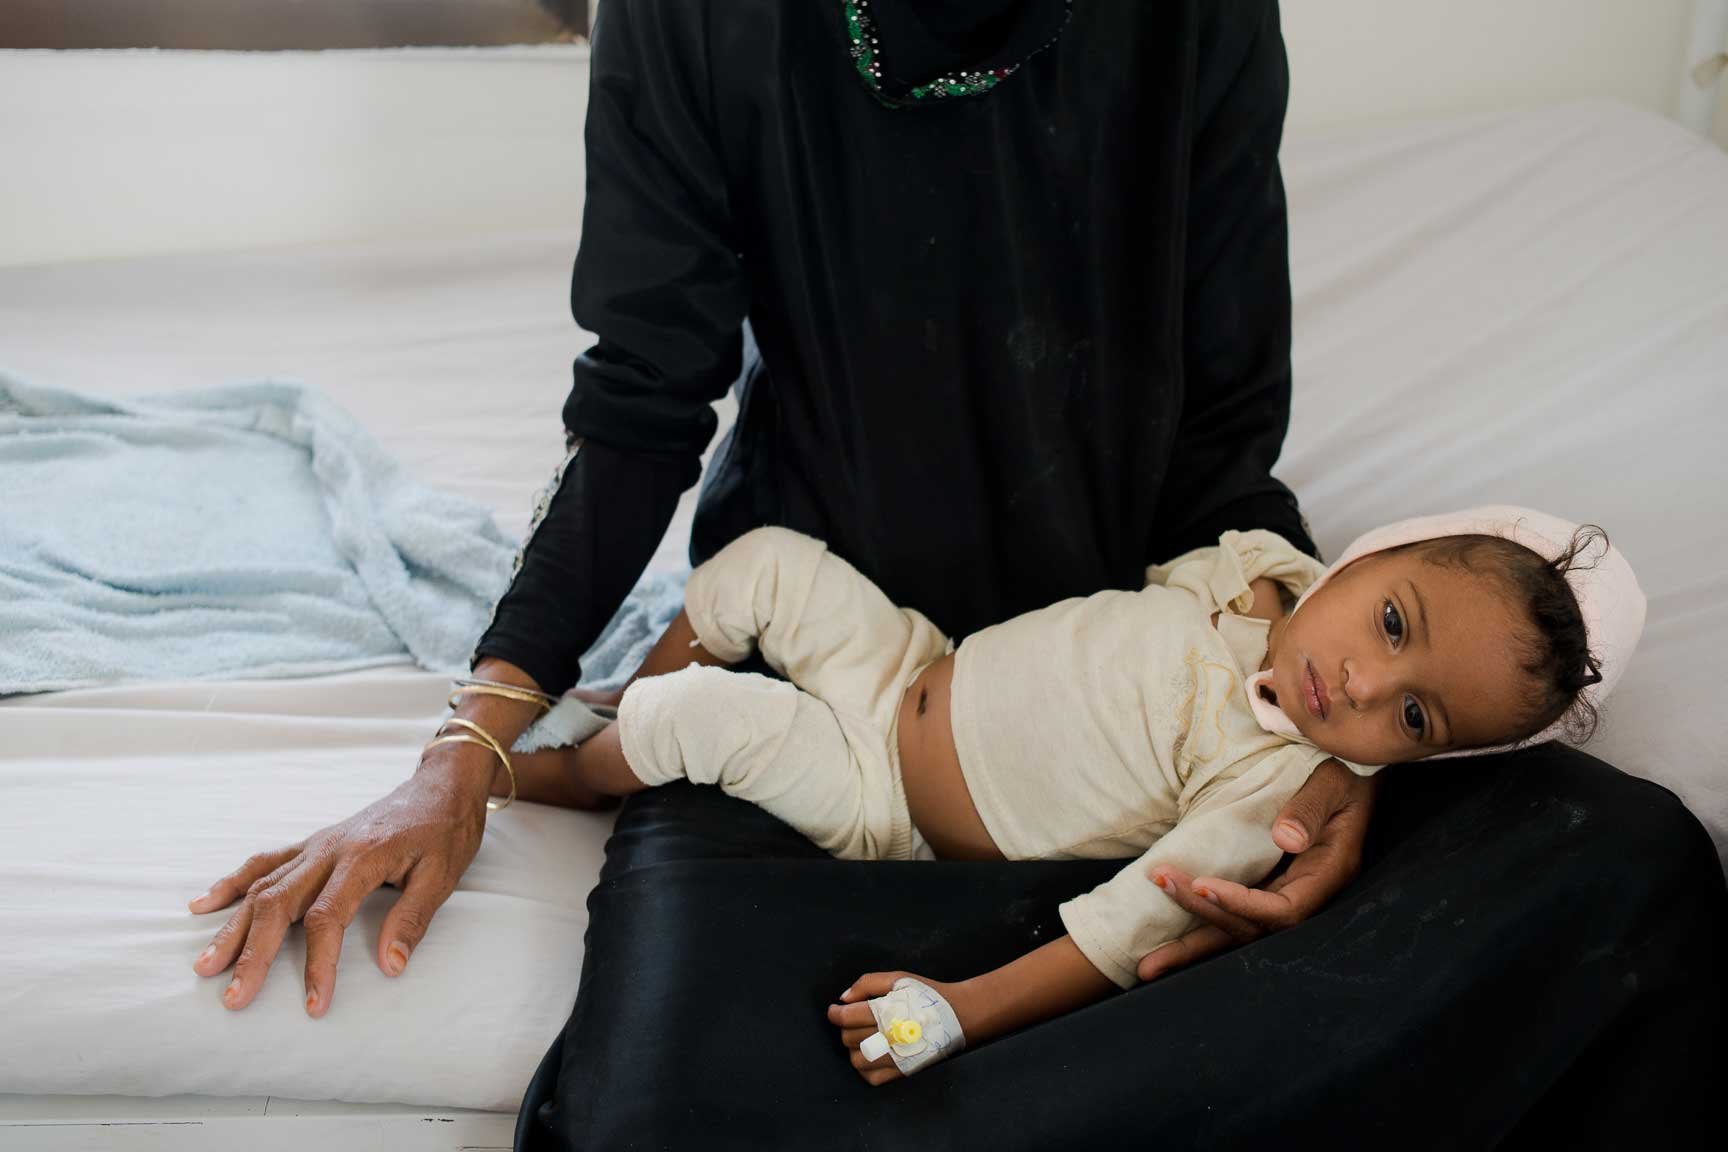 A Yemeni mother holds her malnourished daughter in the children's ward of MSF-supported al Salam Hospital on July 7, 2015 in Amran, Yemen. The mother was too malnourished to breastfeed, and couldn't afford formula or fresh powdered milk. The powder she bought turned out to be spoiled, and her daughter fell ill for weeks.